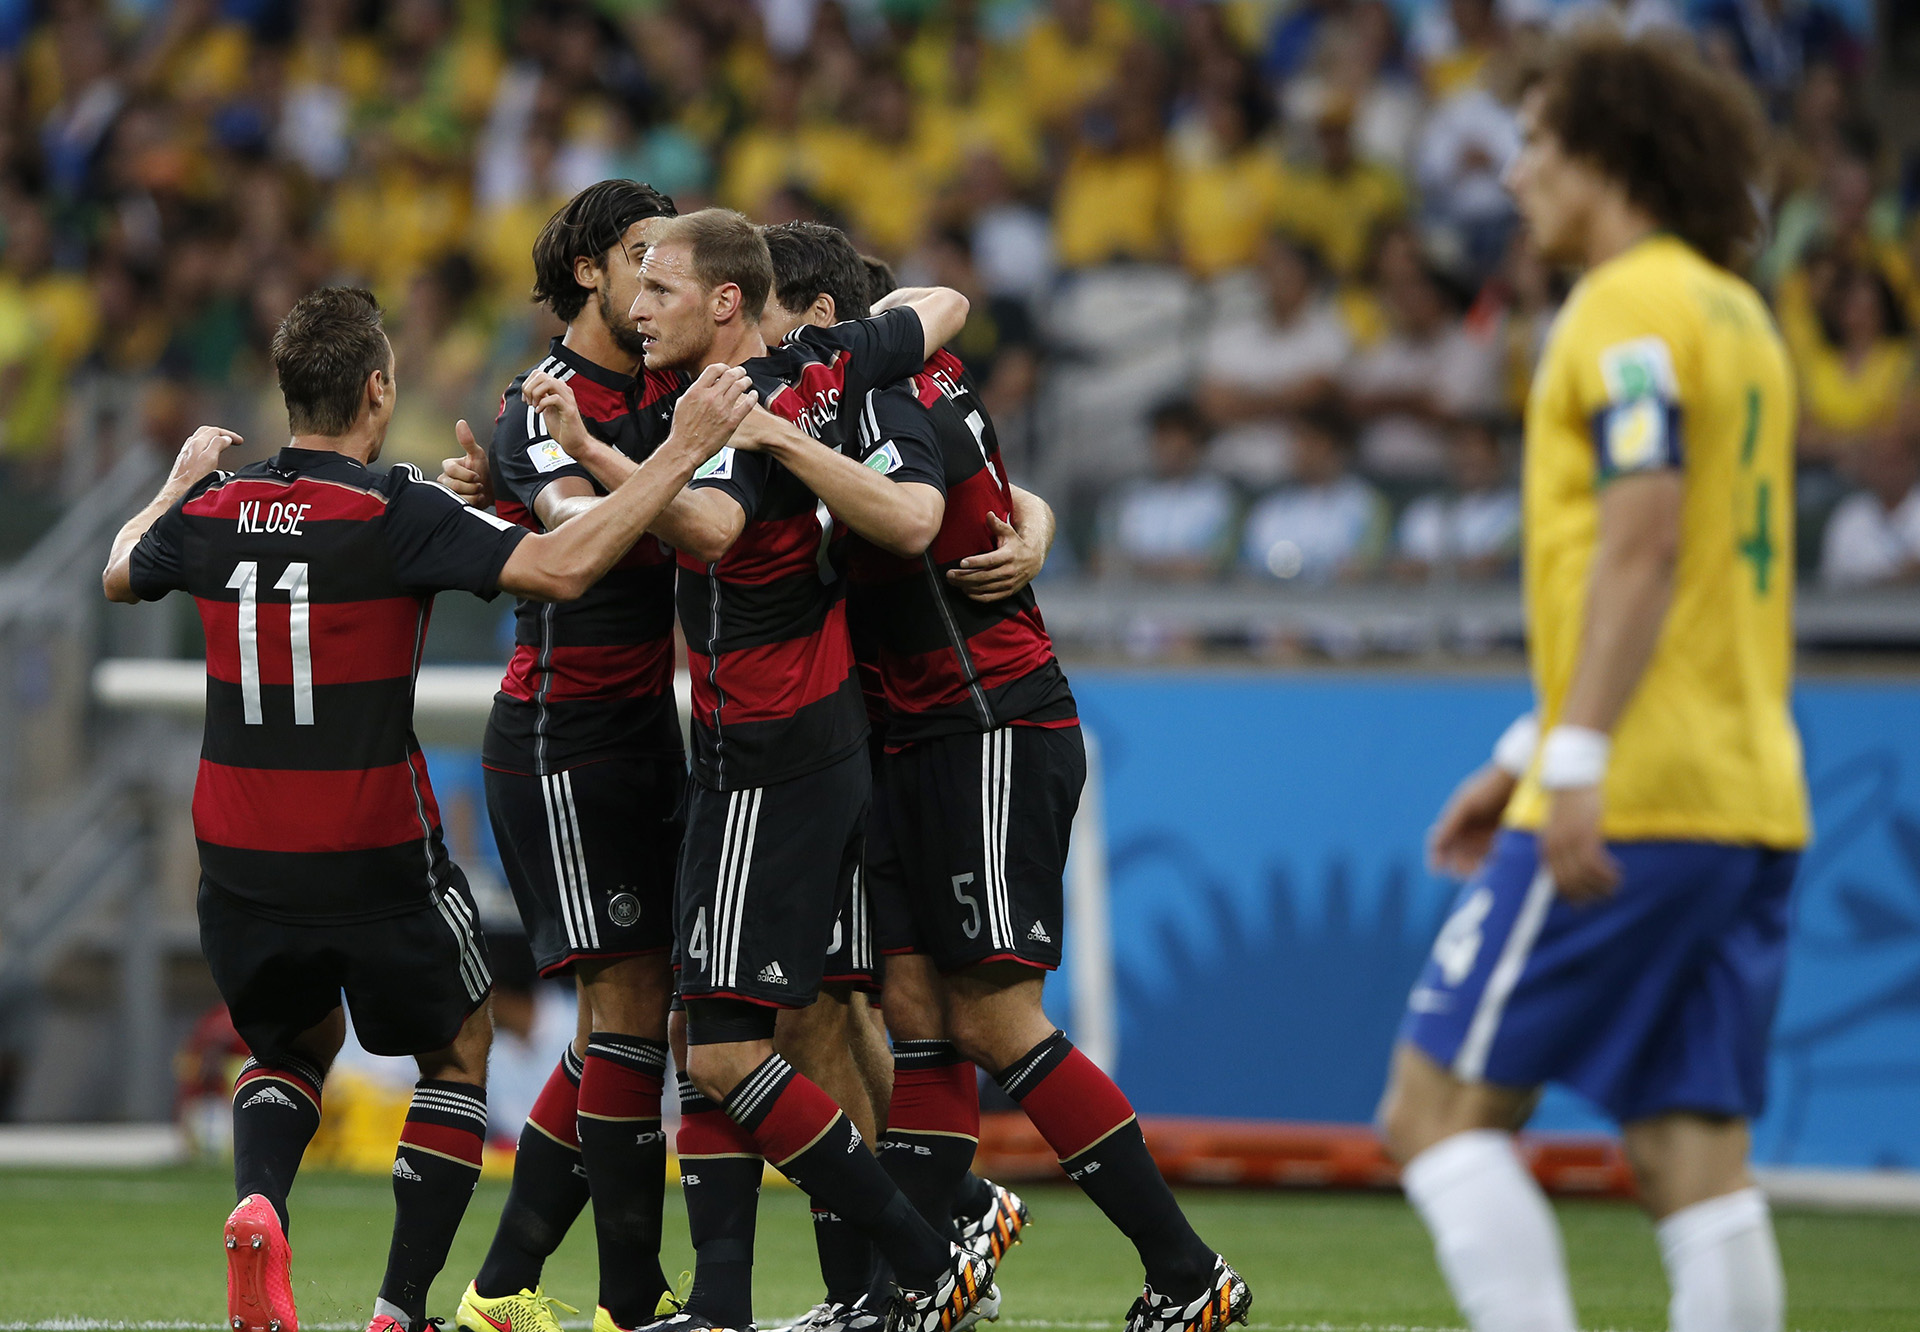 Muller goal celebration Brazil Germany 2014 World Cup Quarter-final 07082014